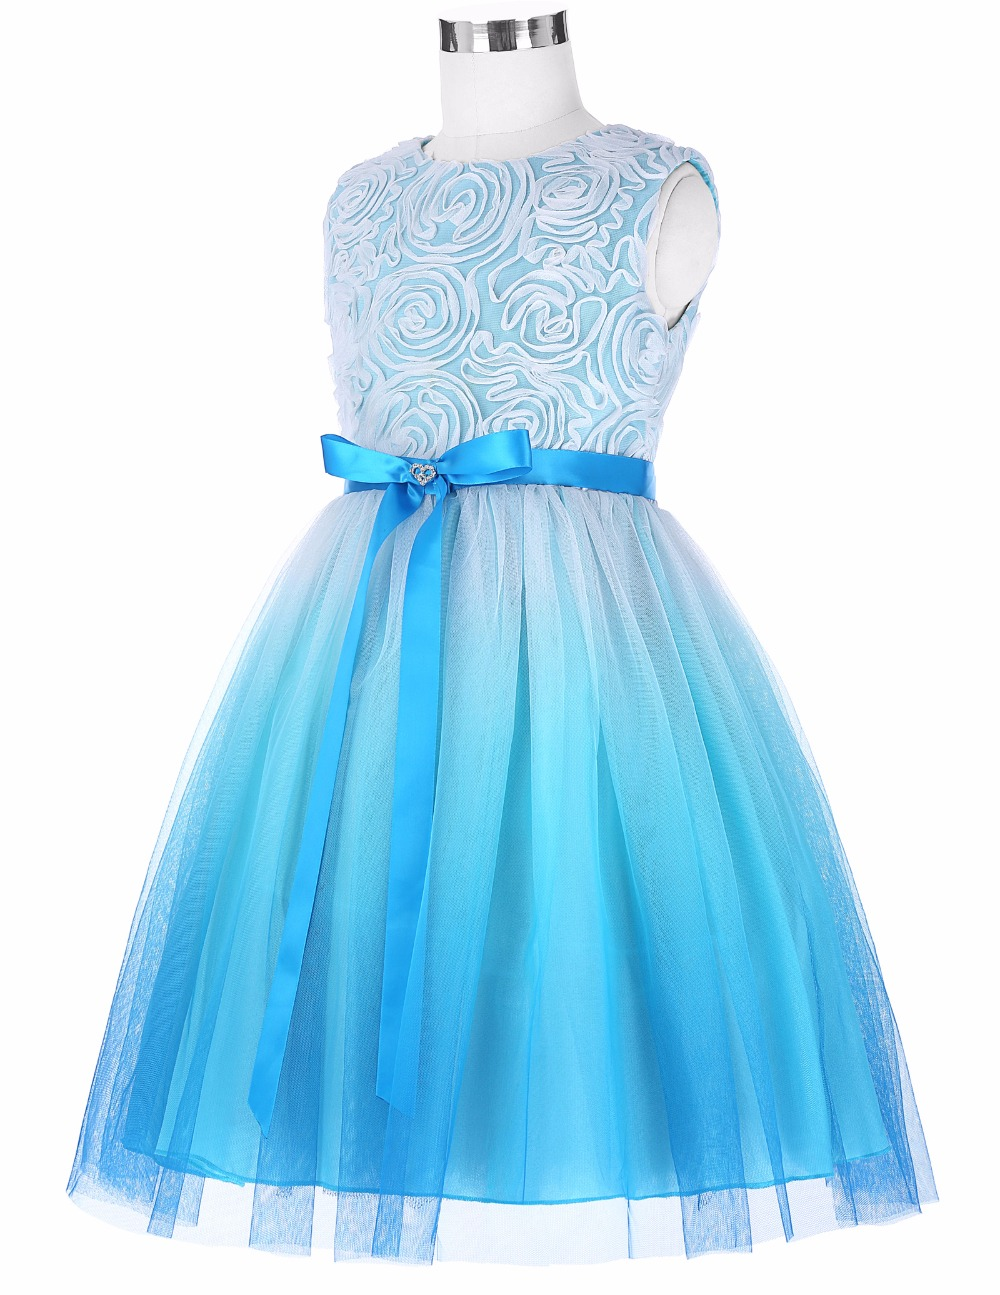 Grace Karin 2017 Flower Girl Dresses Luxury Tulle Flower Party Dresses For Wedding Party First Communion Dresses With Bow Ribbon 13